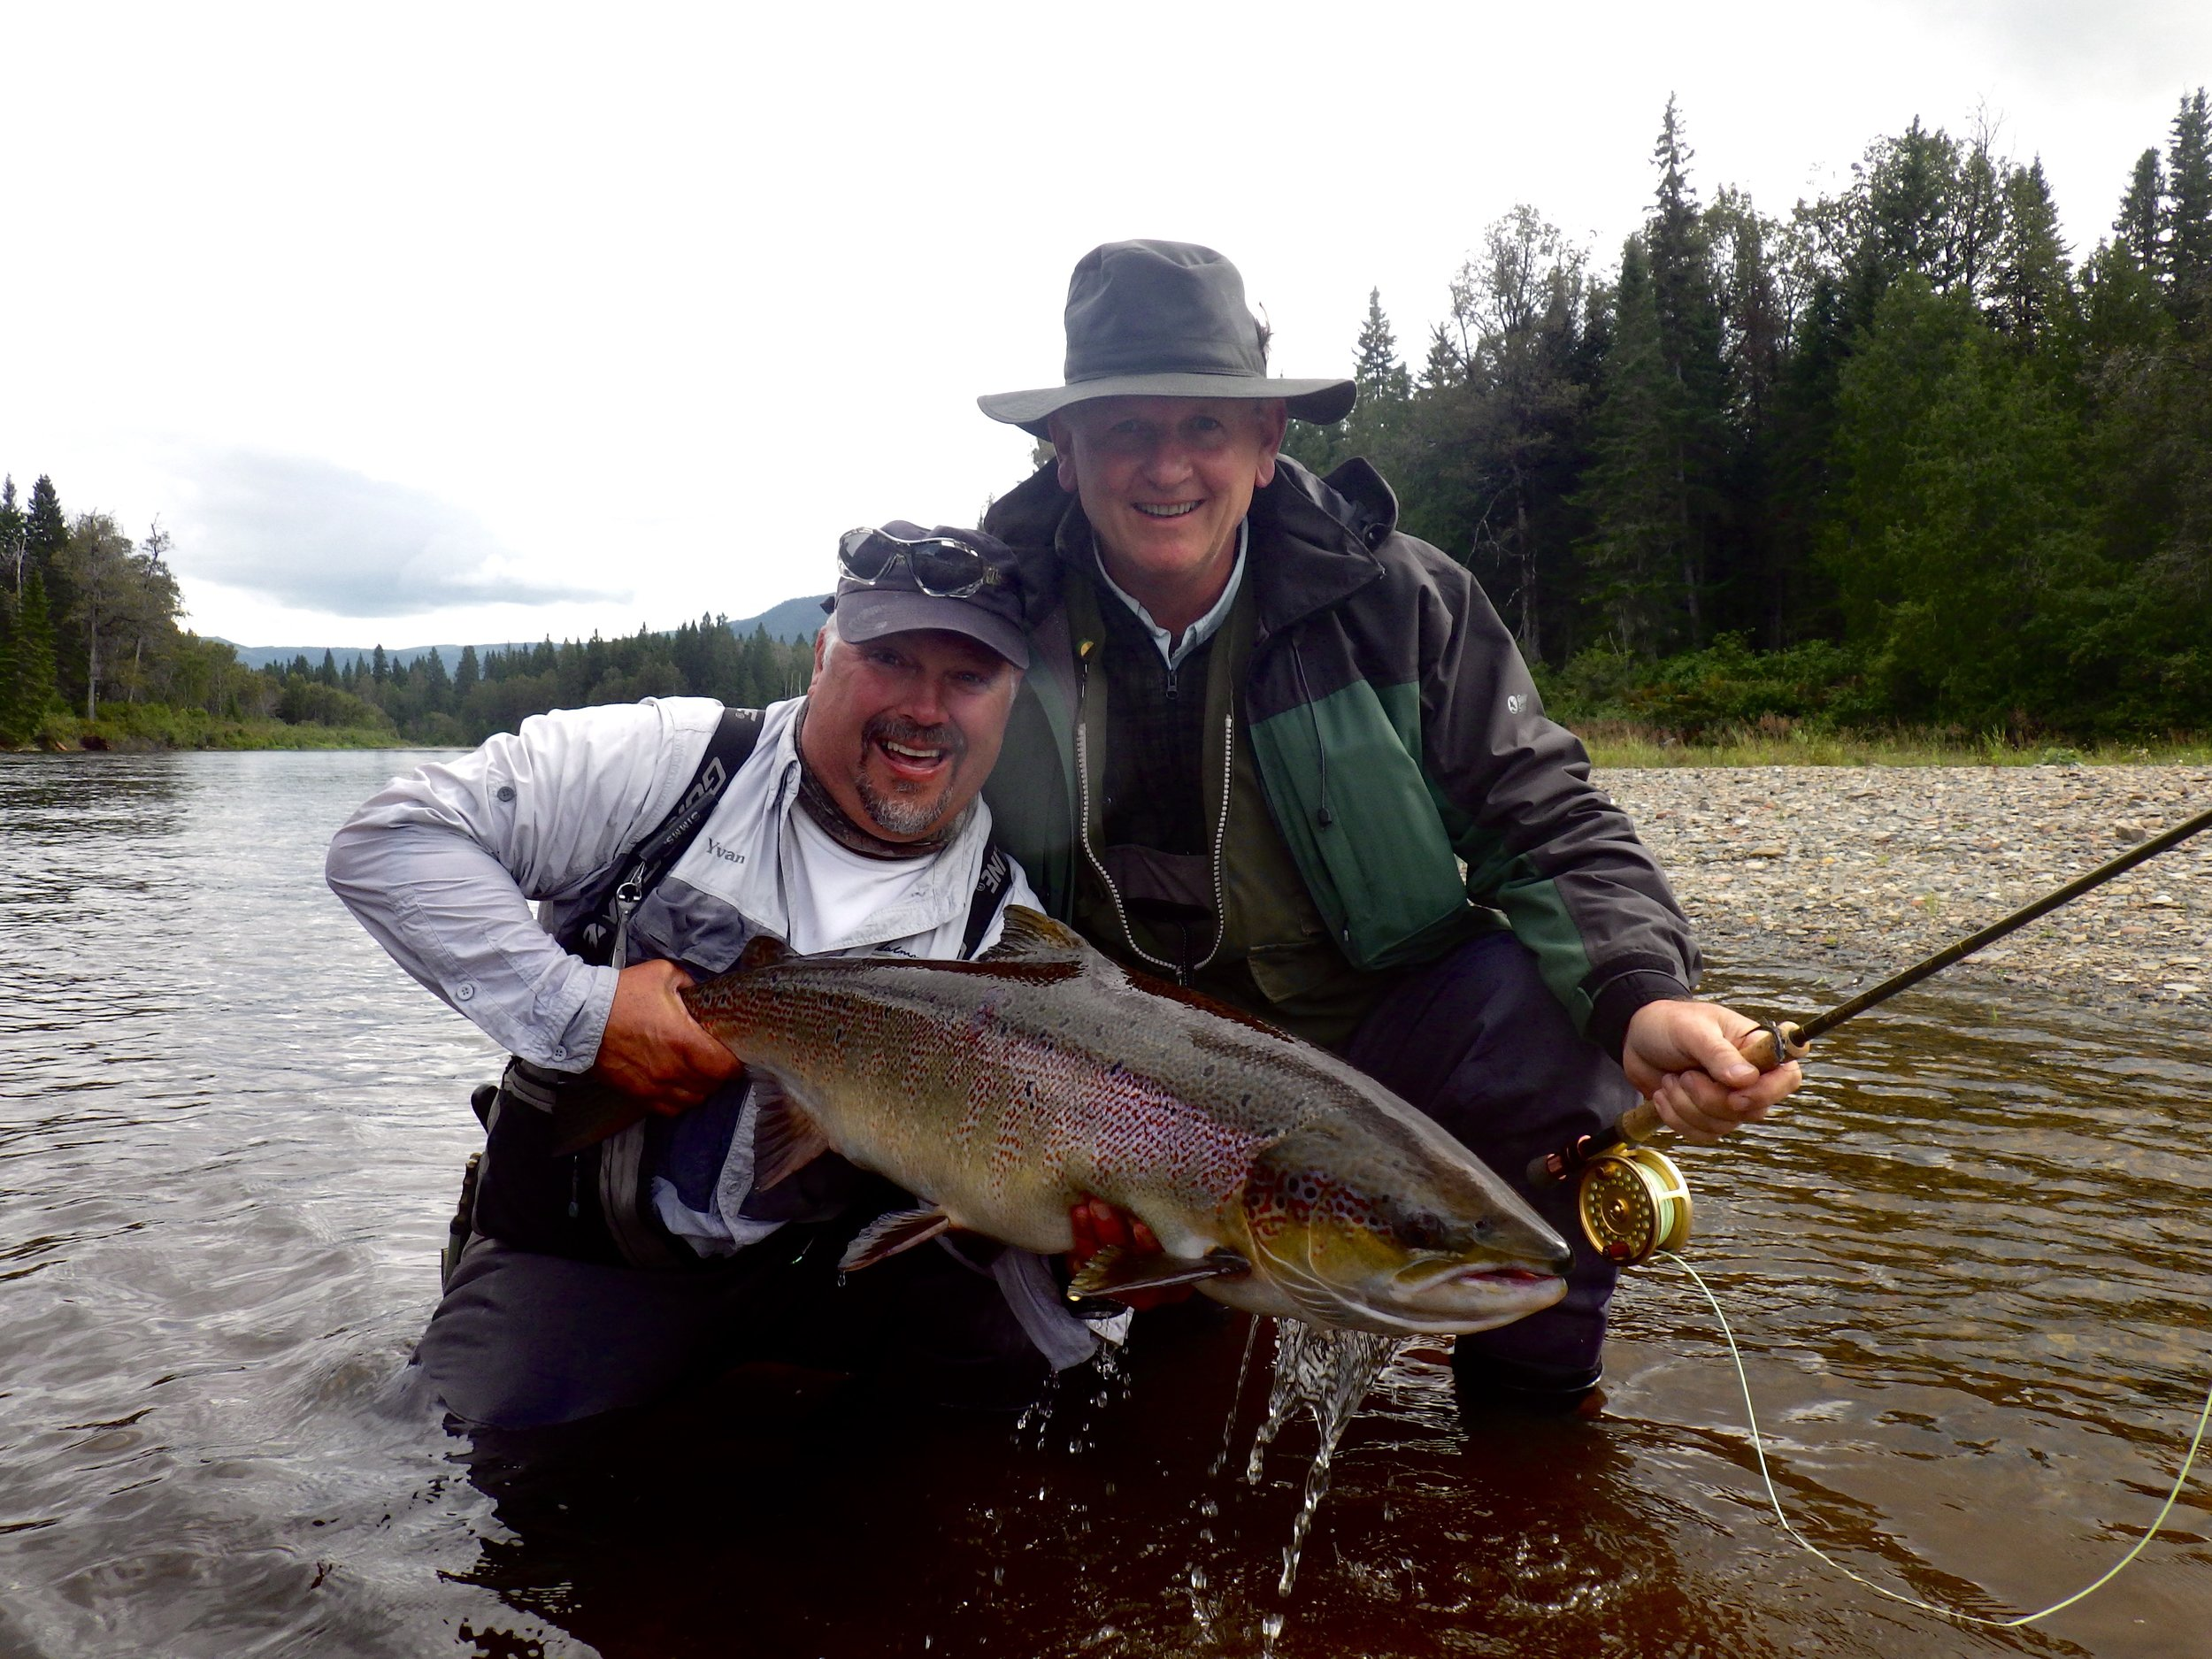 Salmon Lodge guide Yvan Bernard (left) and angler Stephen Coull with a big Grand Cascapedia Salmon. Congratulations Stephen!